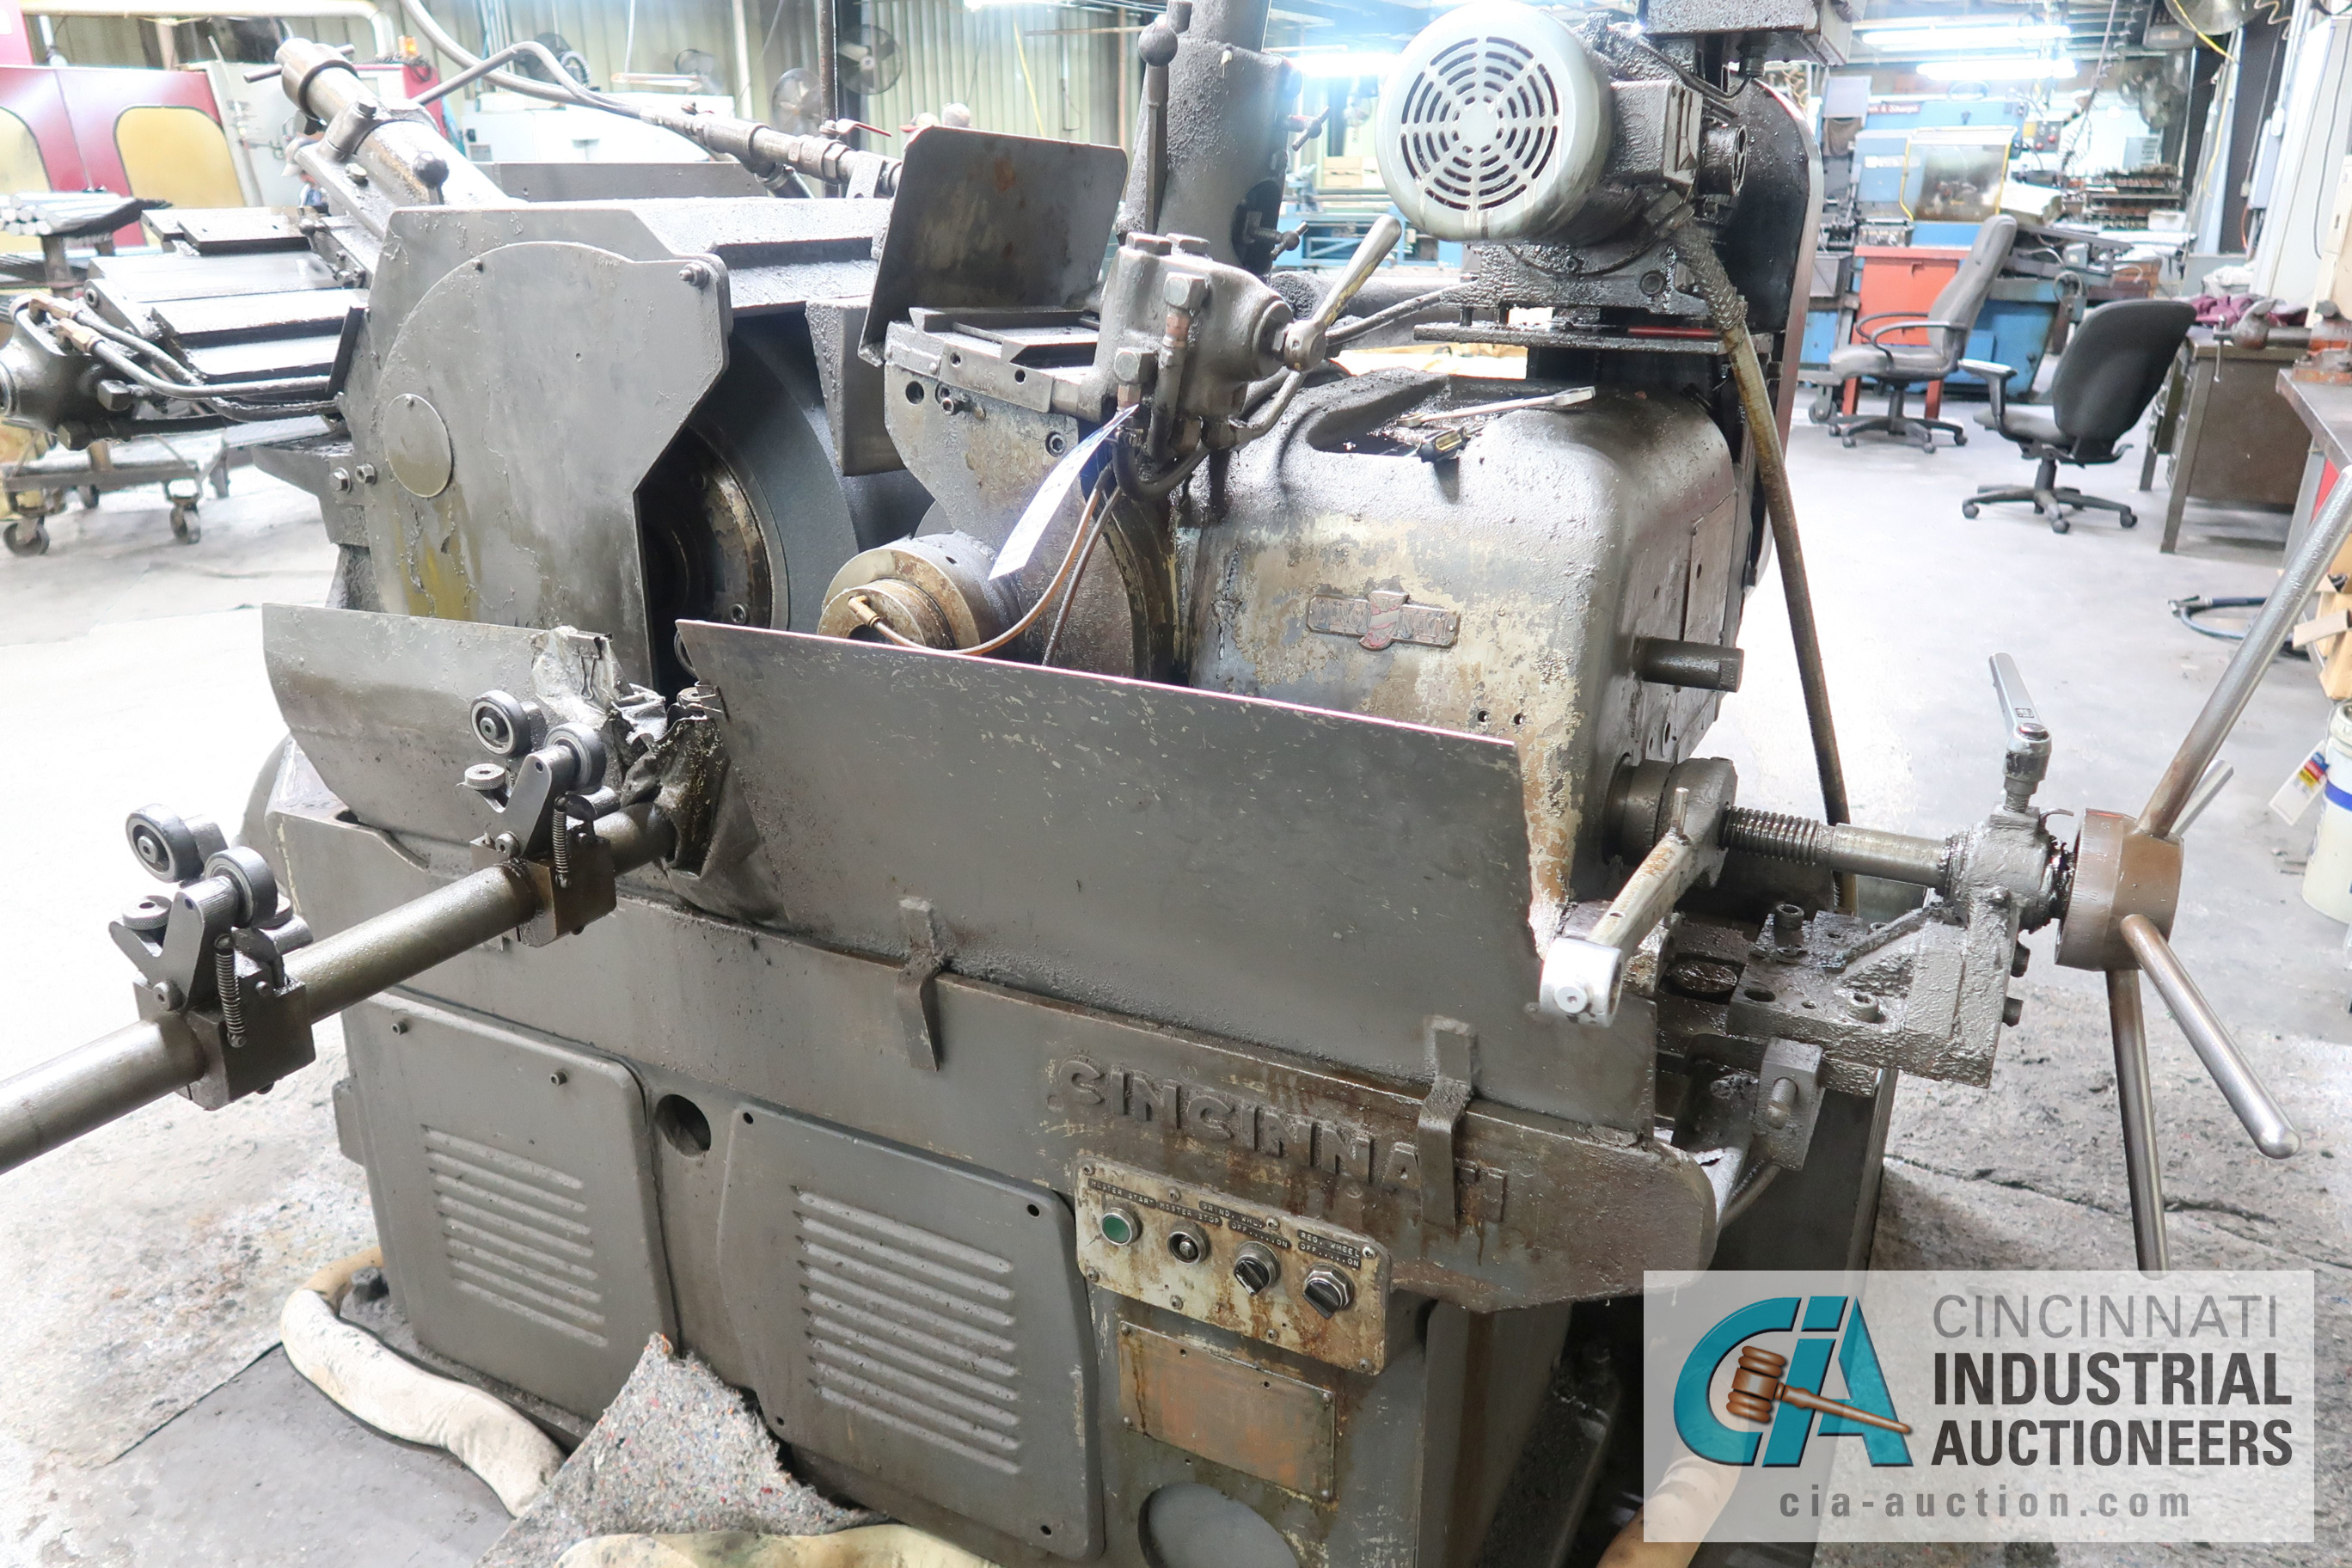 CINCINNATI MODEL 2 CENTERLESS GRINDER; S/N 2M2H1L-2160 WITH INFEED AND OUTFEED CONVEYORS